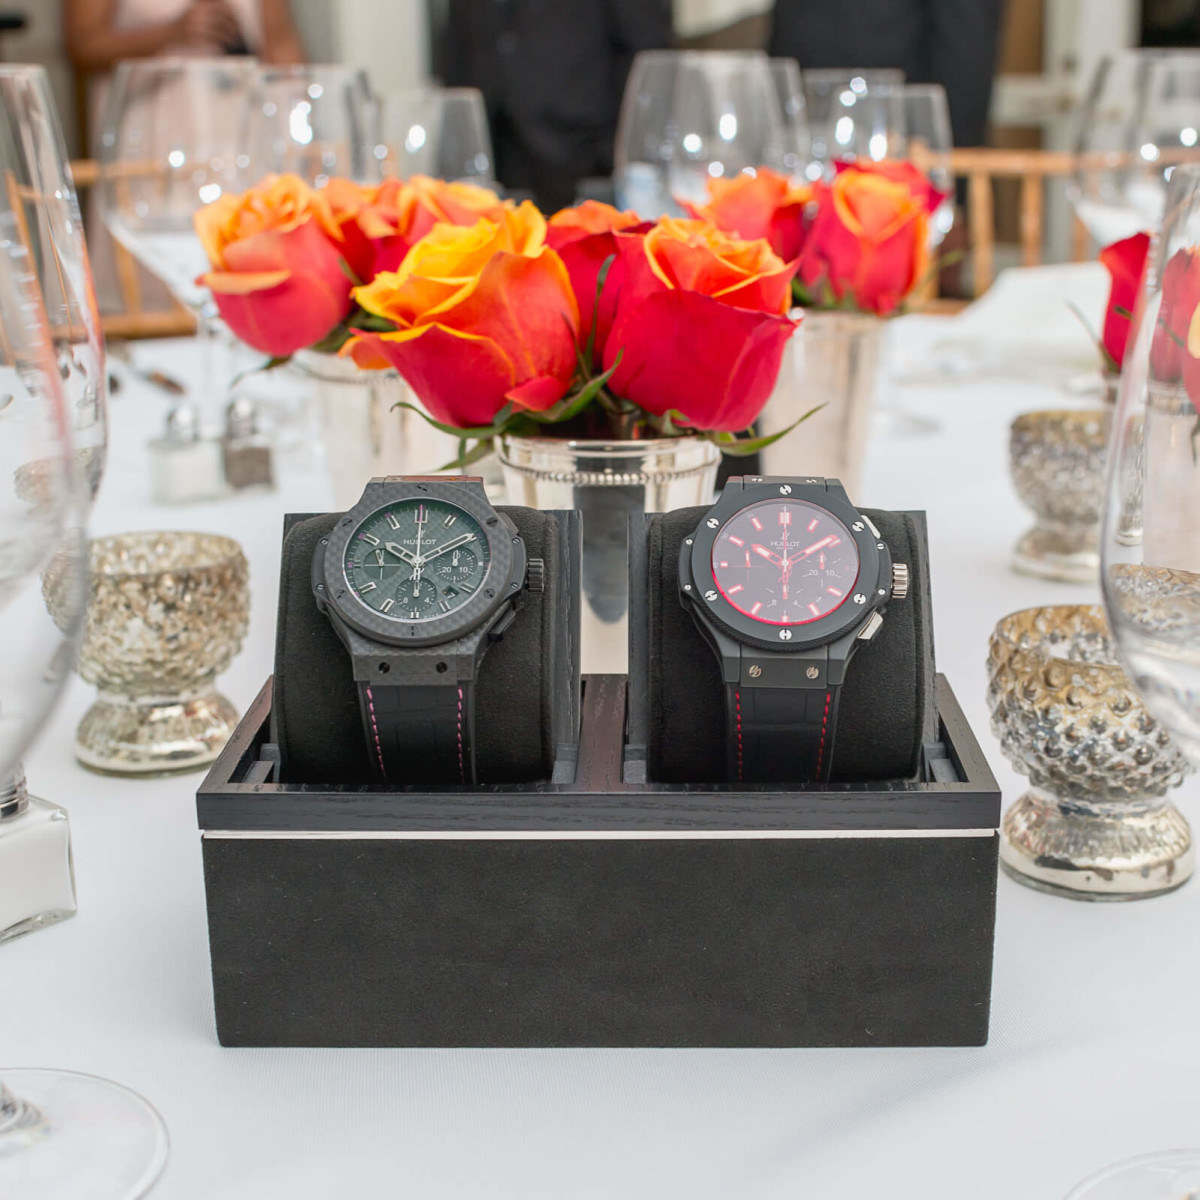 Olympic Basketball party 7/16, Hublot watch